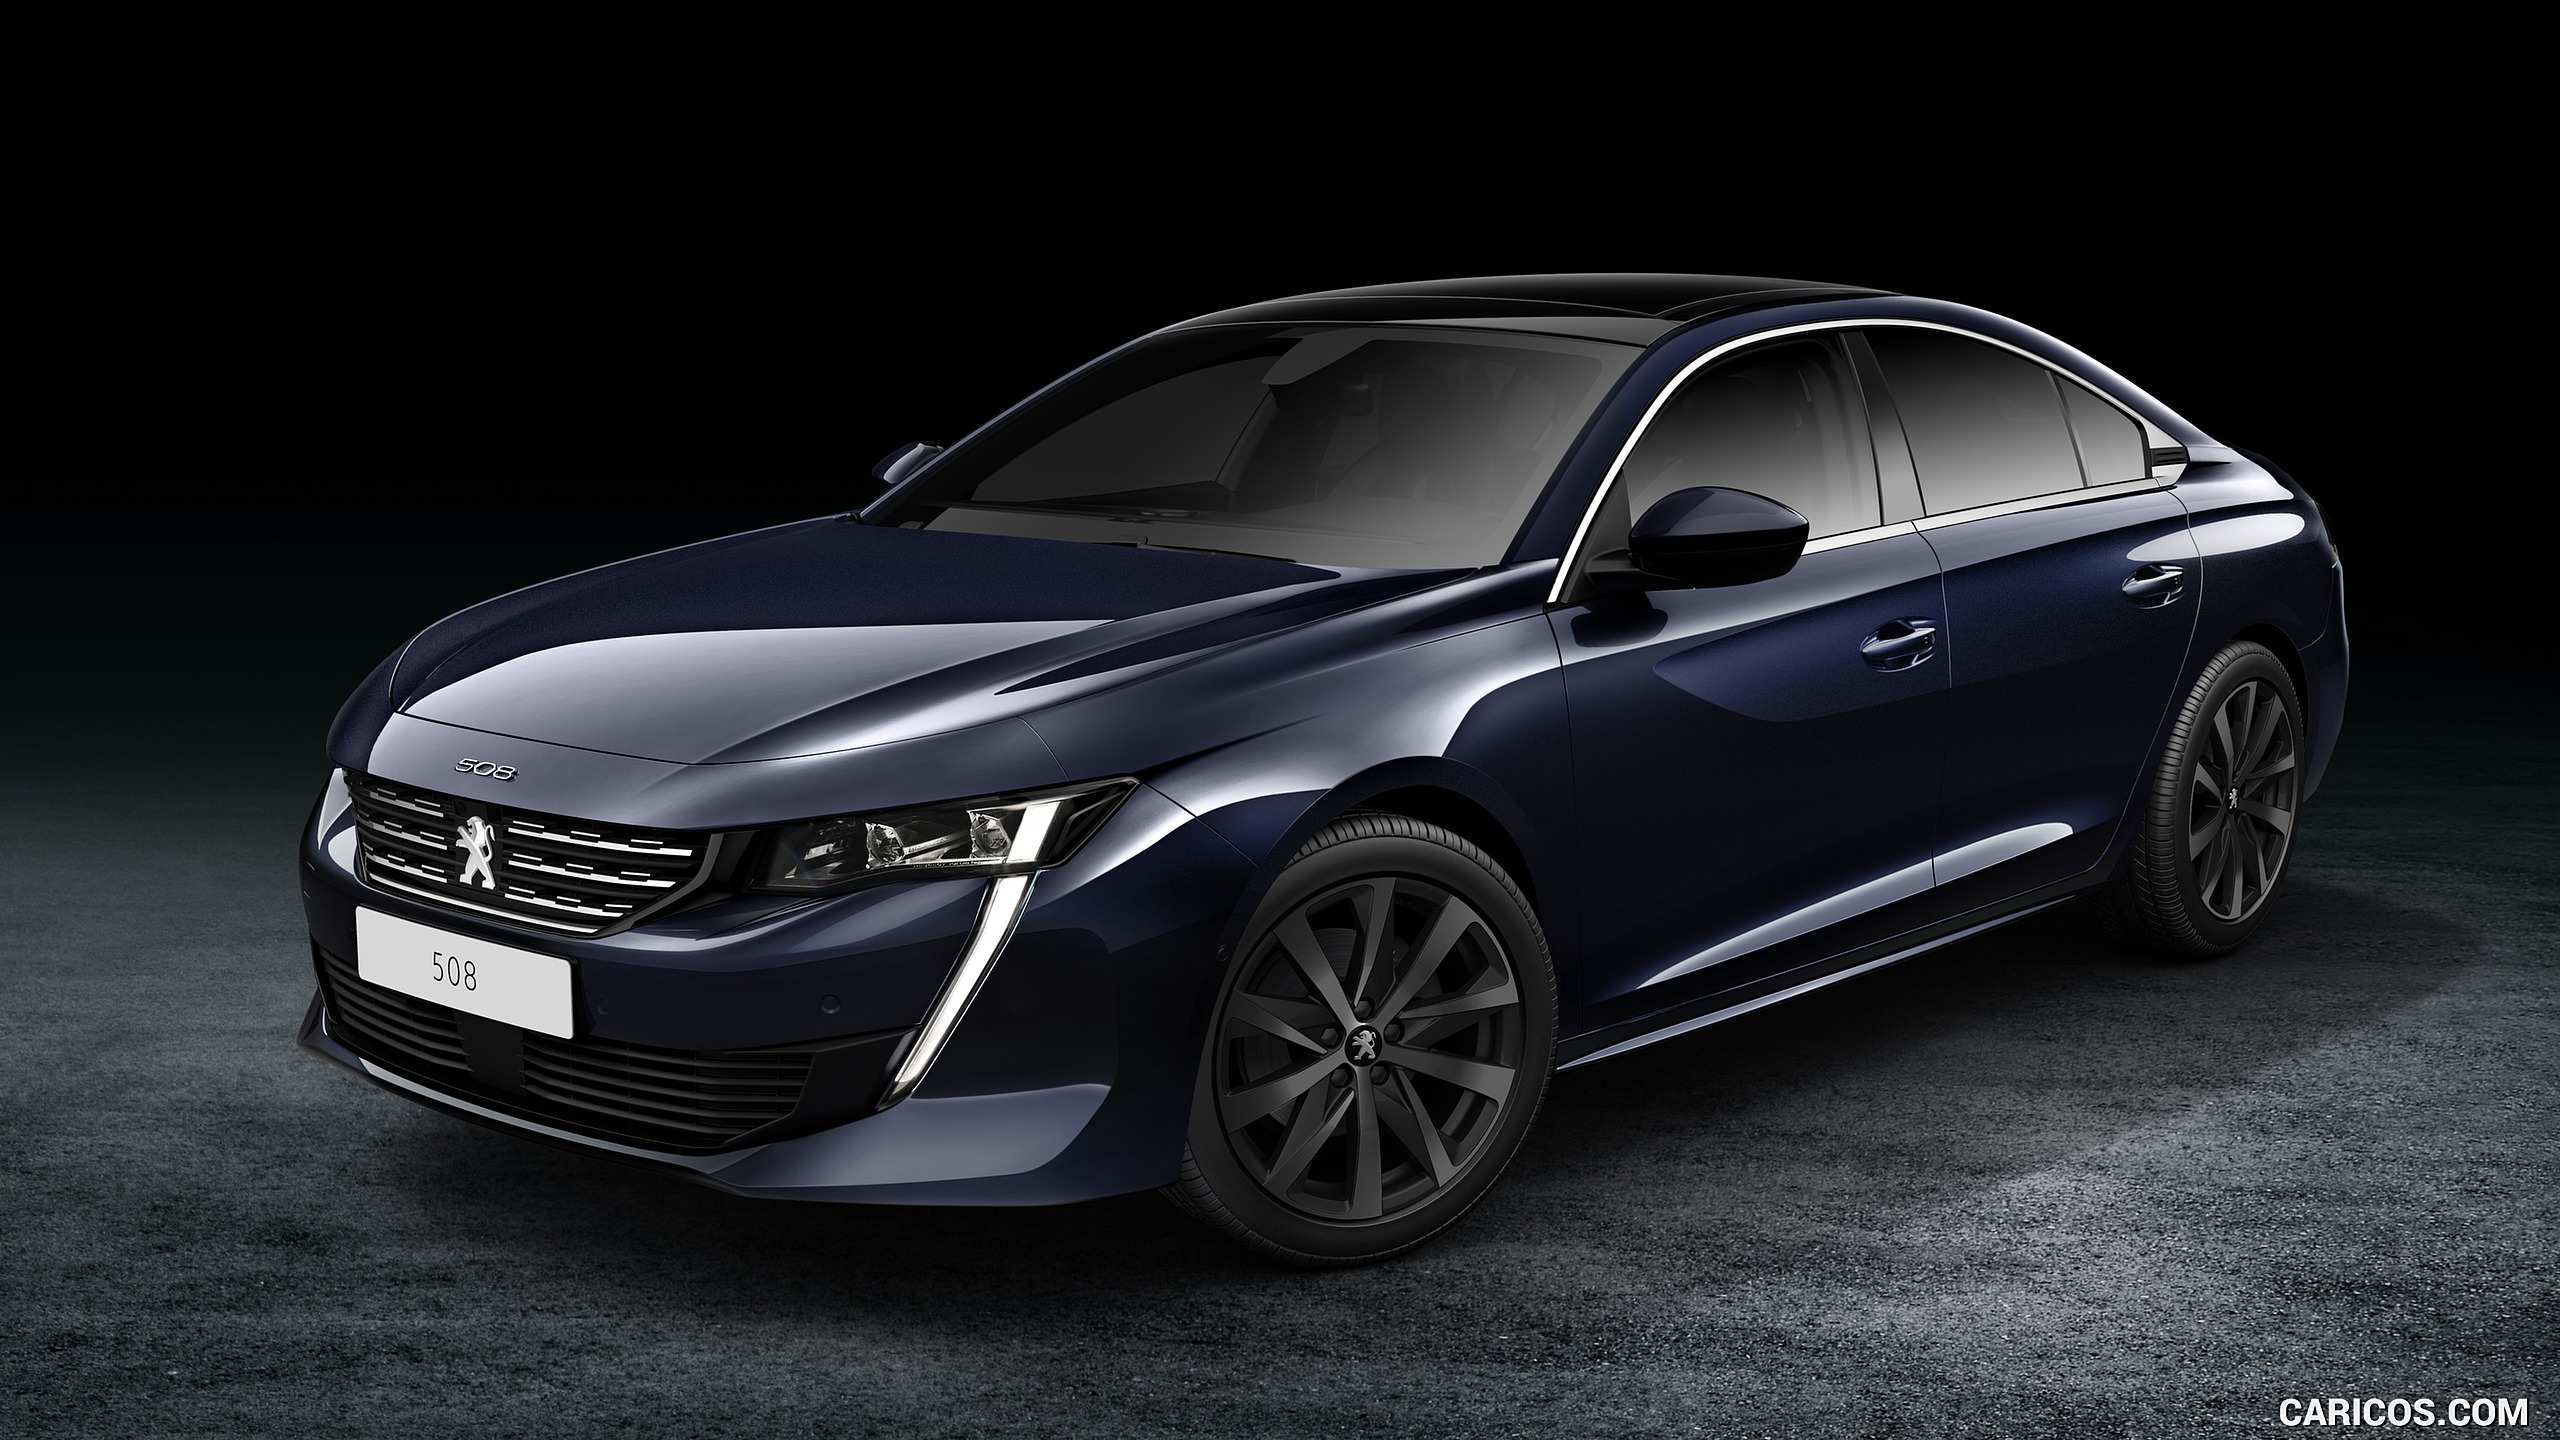 75 Best Review Peugeot En 2019 Pricing by Peugeot En 2019